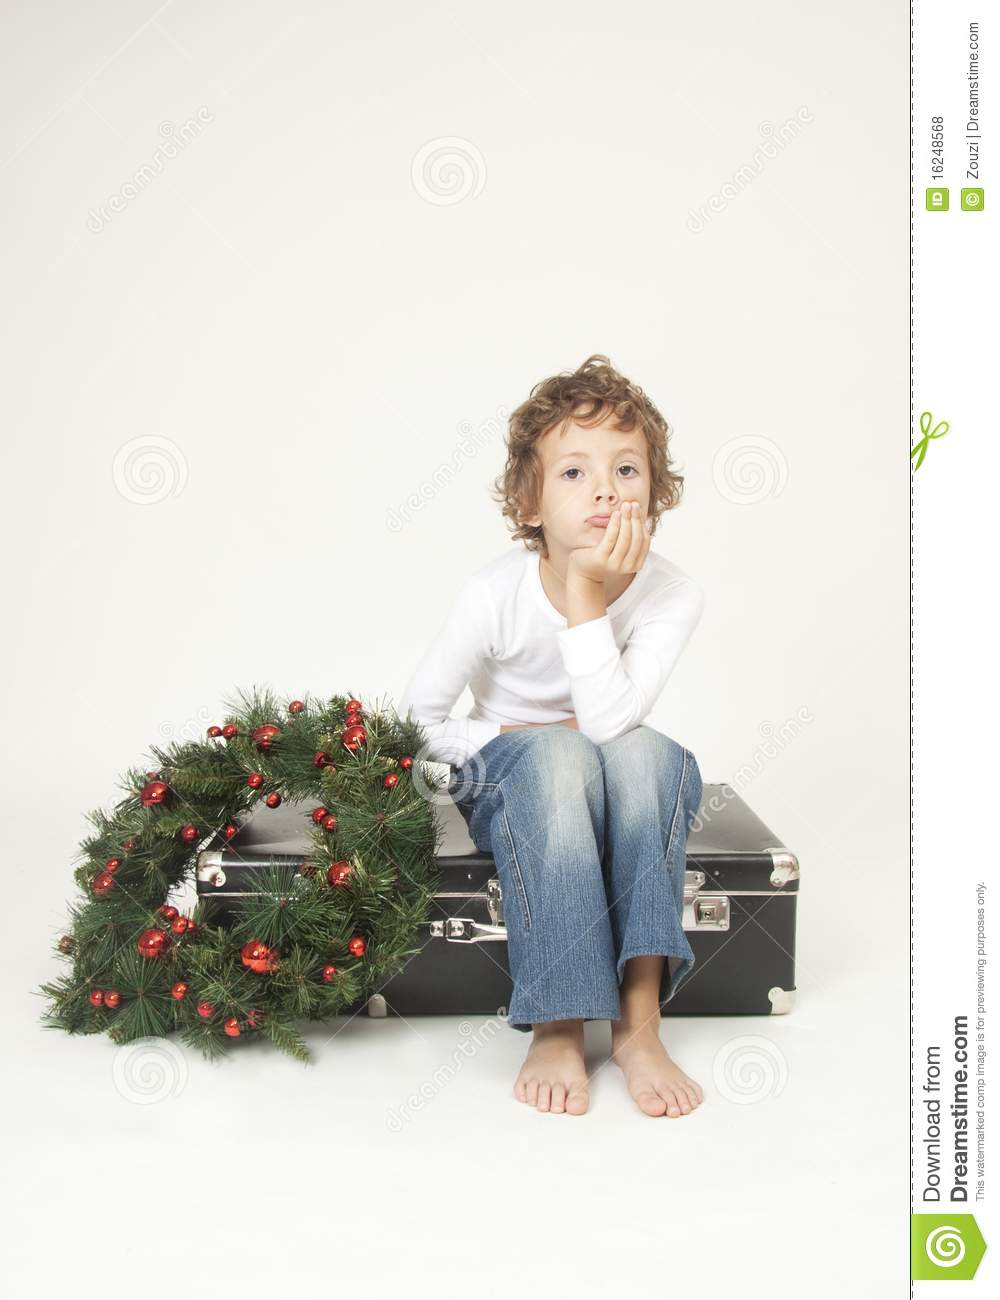 Cute Boy Waiting For Christmas Royalty Free Stock Photos